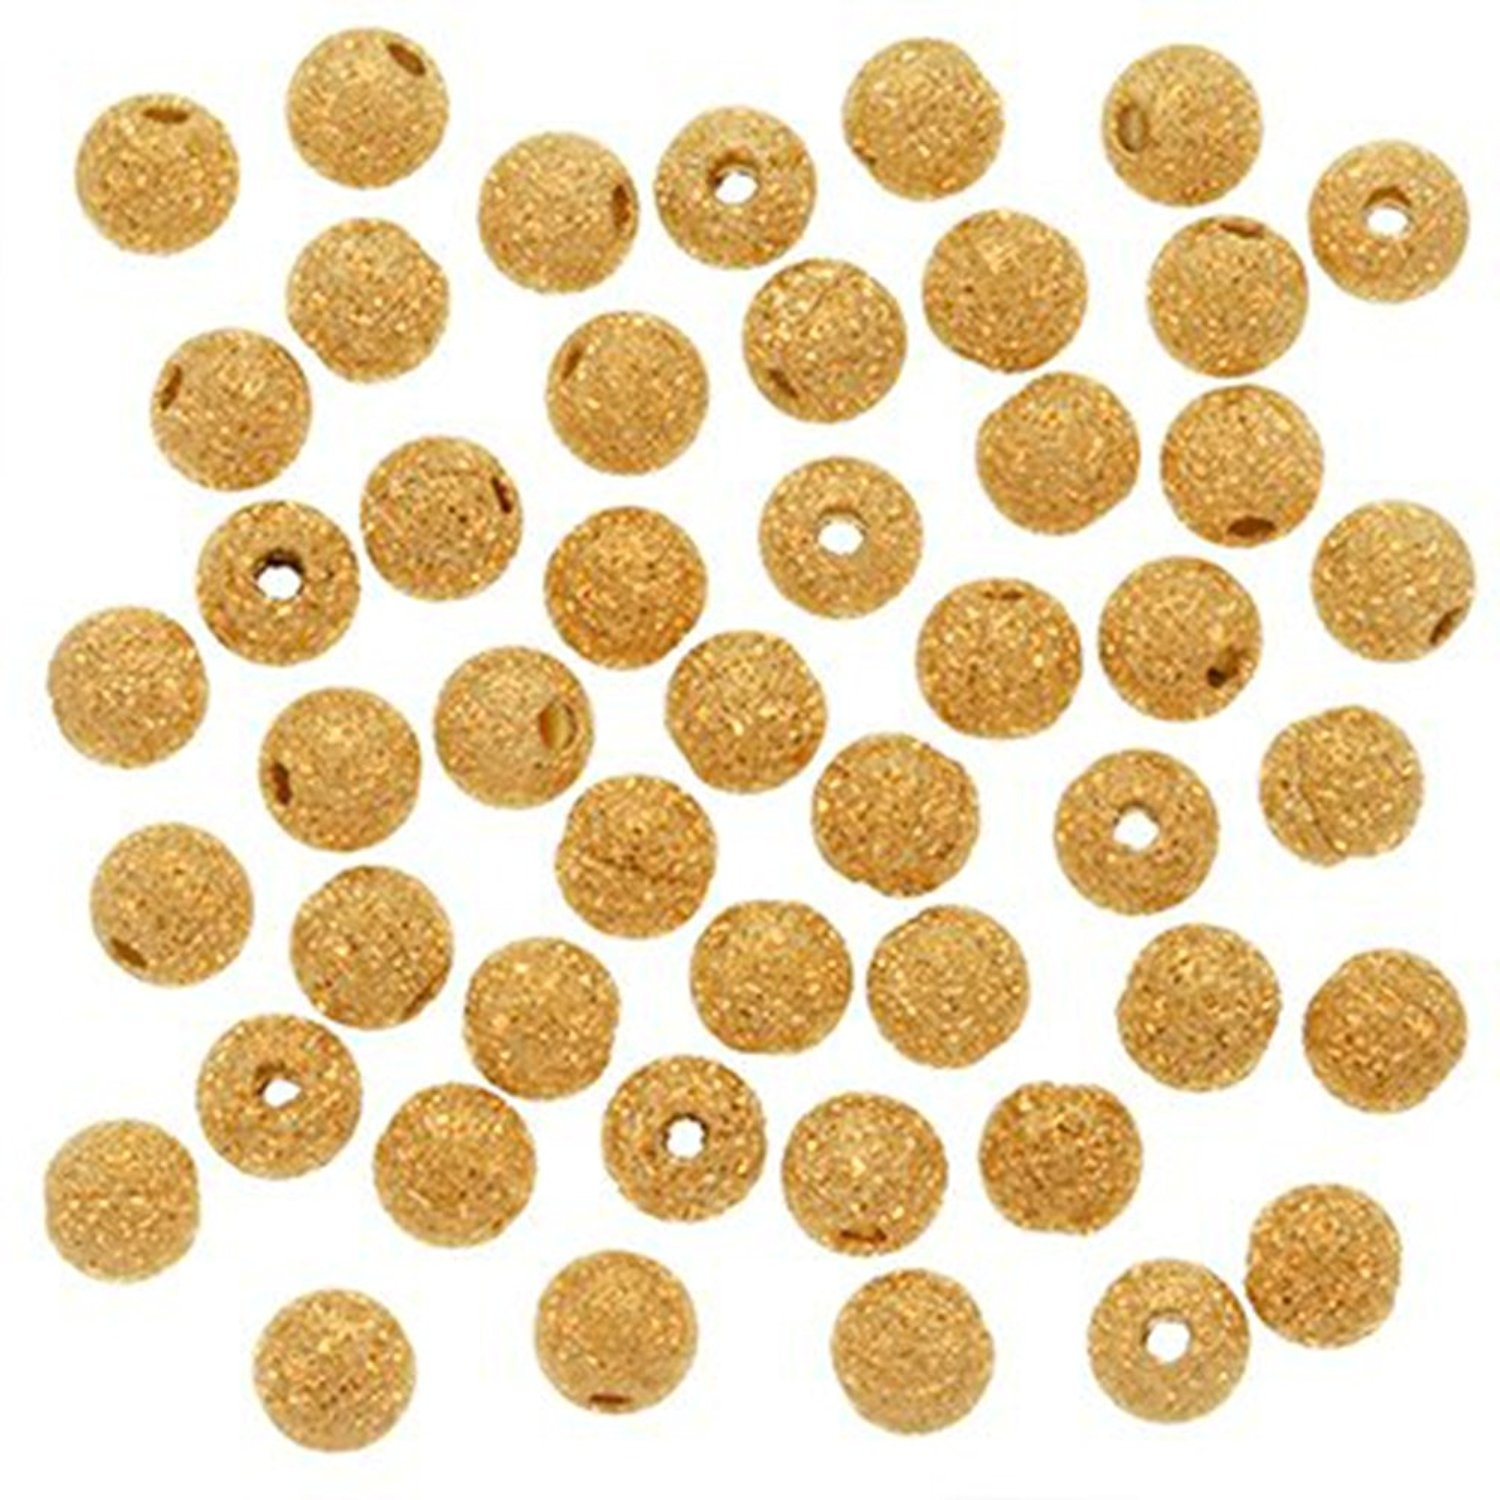 Wadoy 22K Gold Plated Stardust Sparkle Round Beads 4mm (100pcs) DUMAN STARDUST60